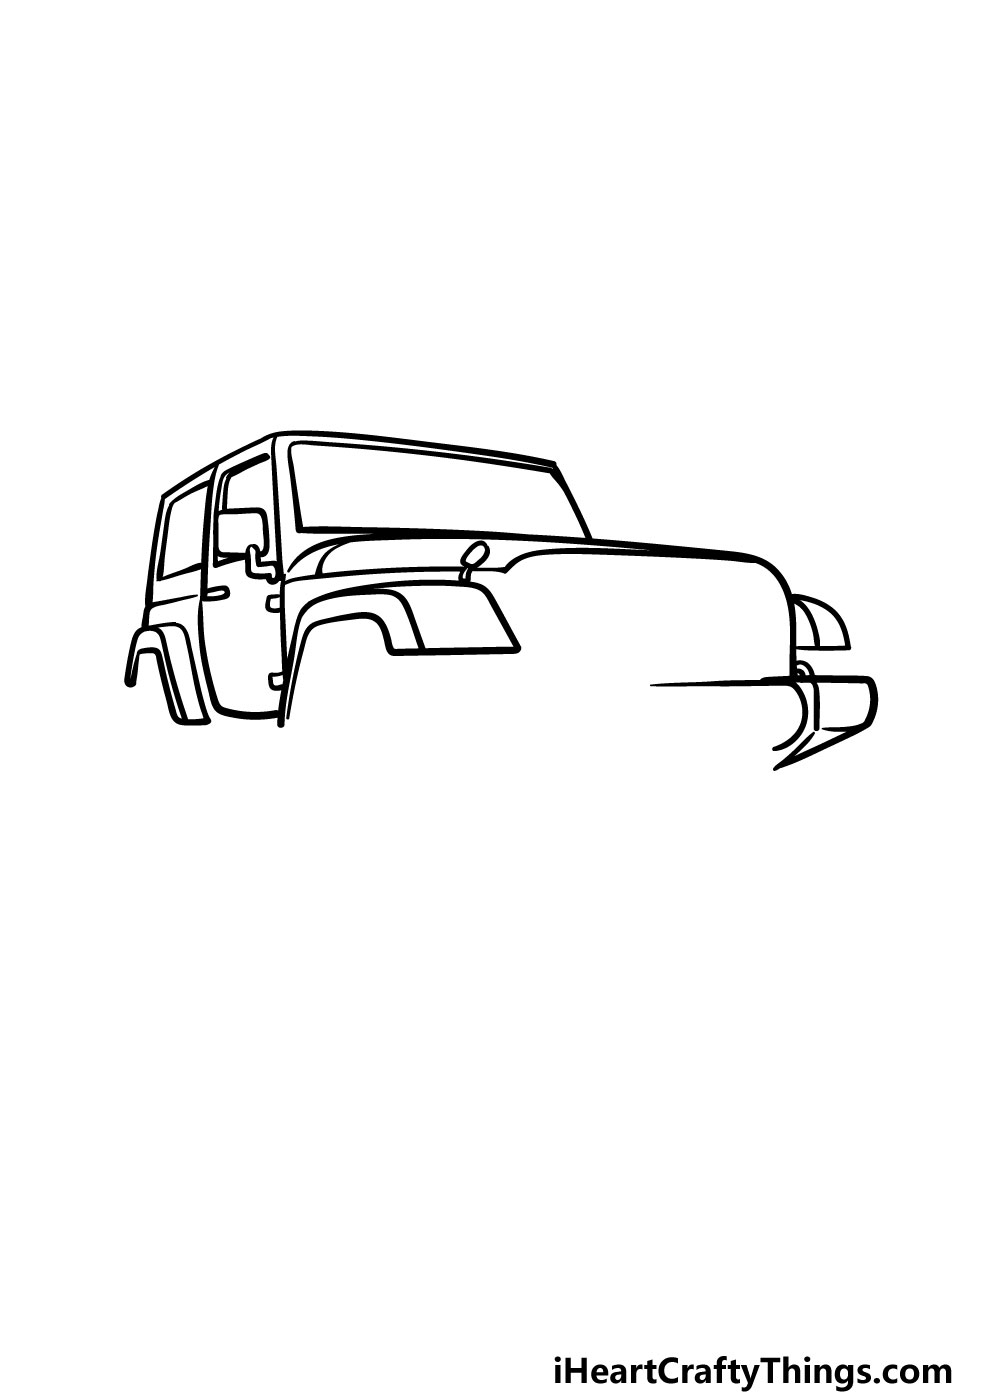 drawing a jeep step 4